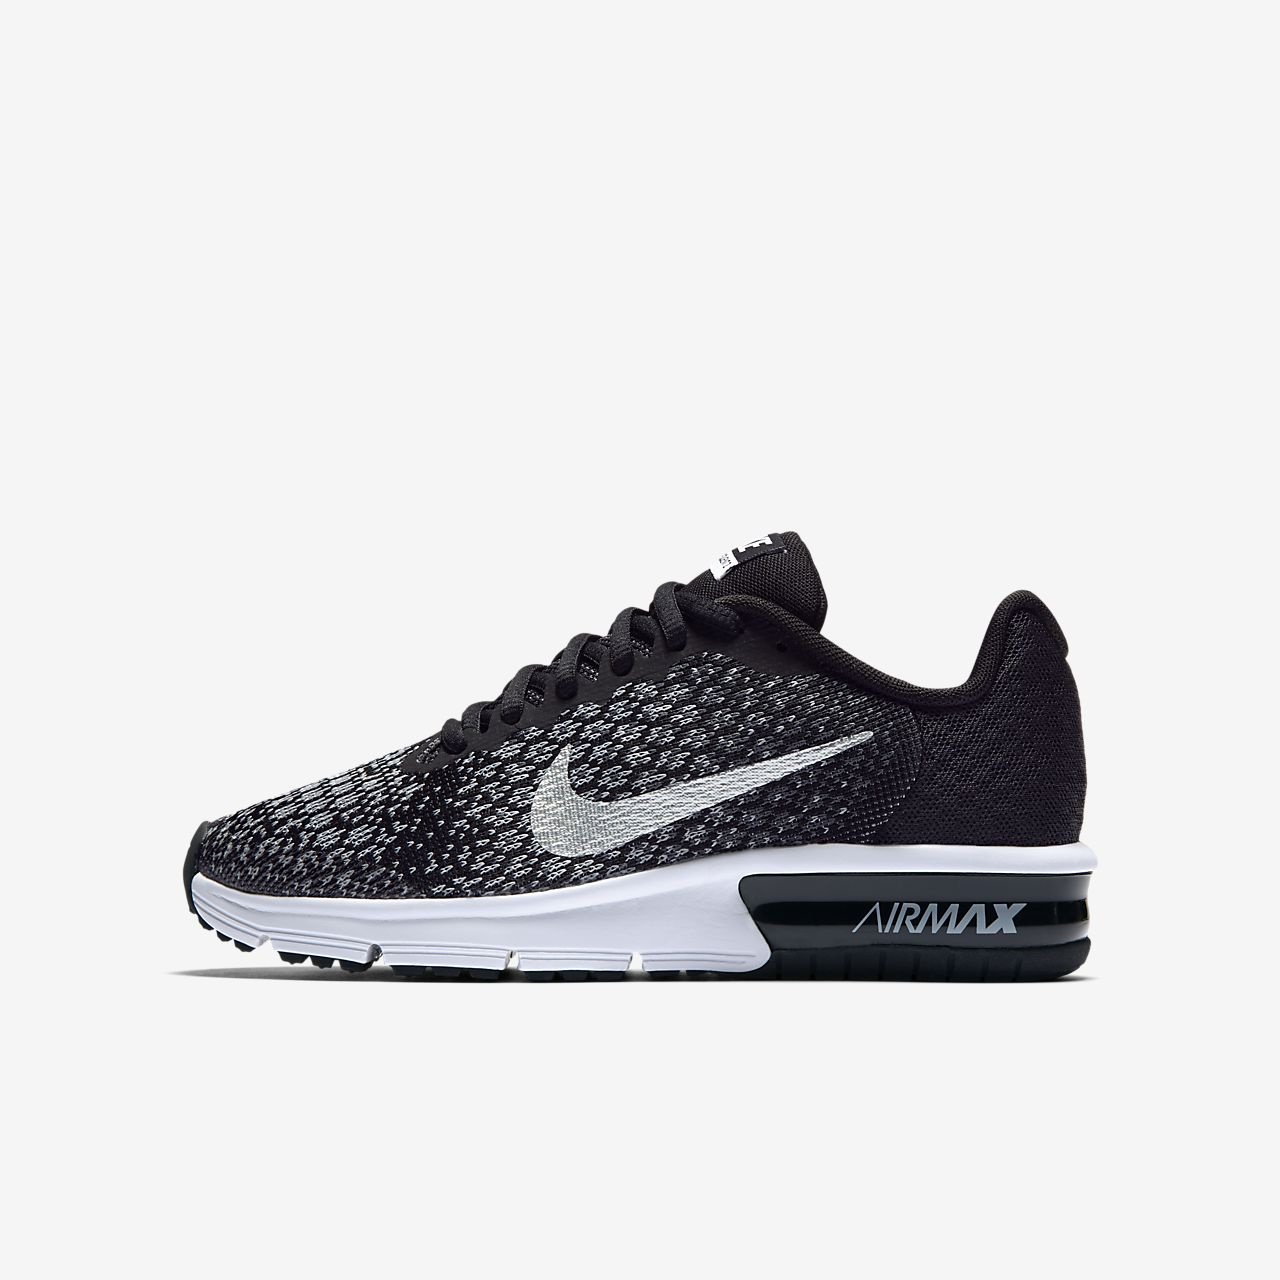 competitive price 503a6 b5215 Nike Air Max Sequent 2 Zapatillas de running - Niño/a. Nike.com ES